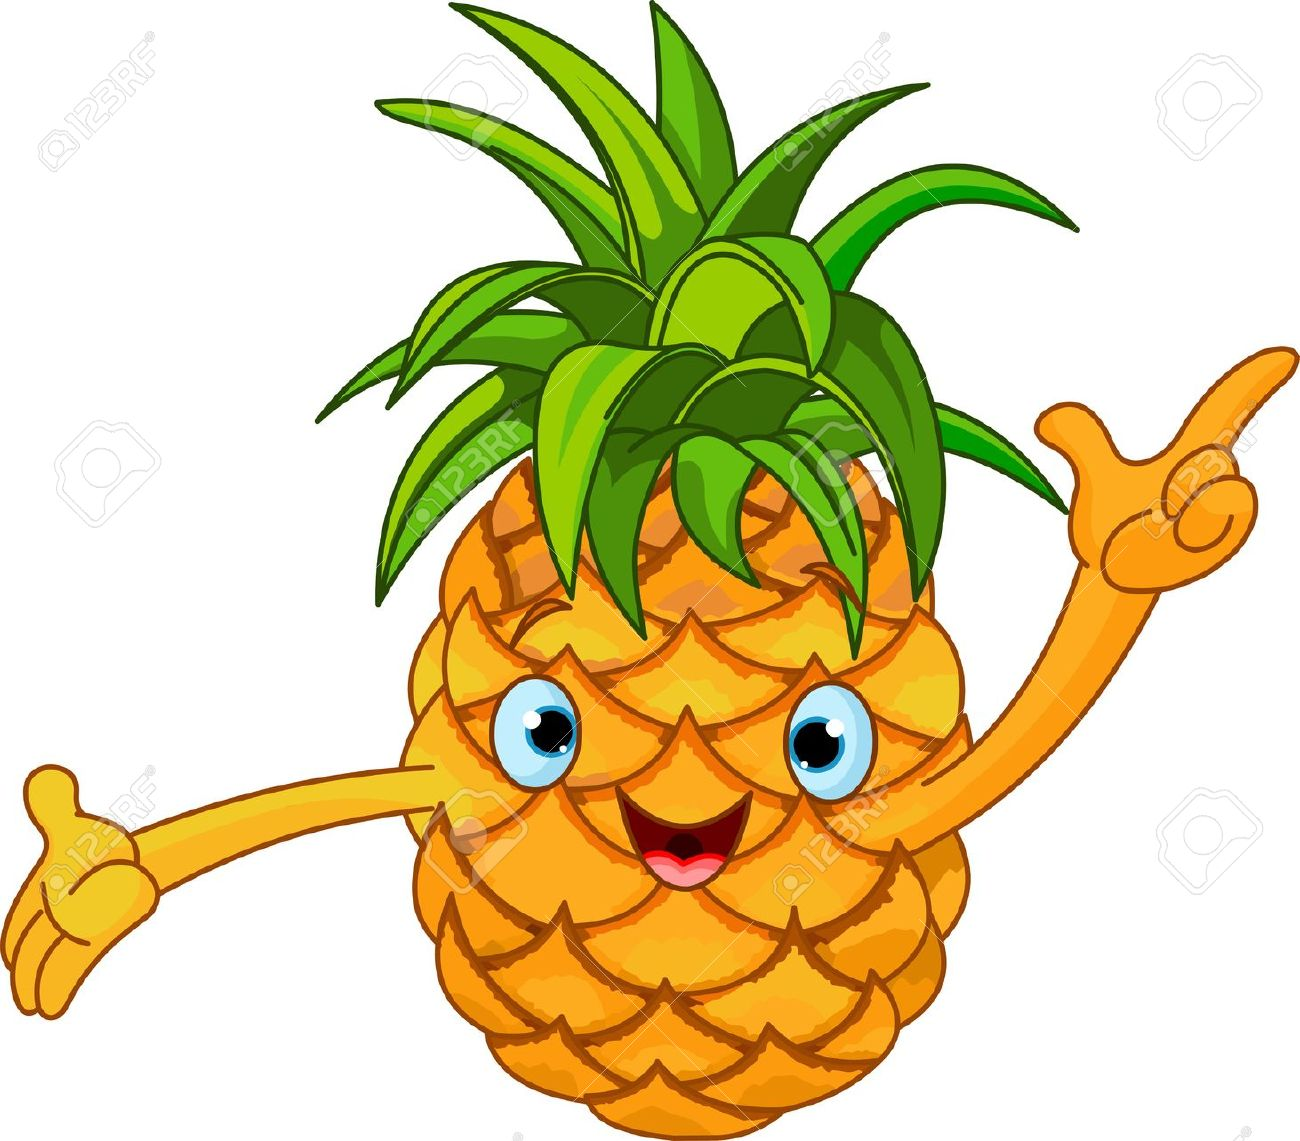 1300x1141 Pineapple Clip Art